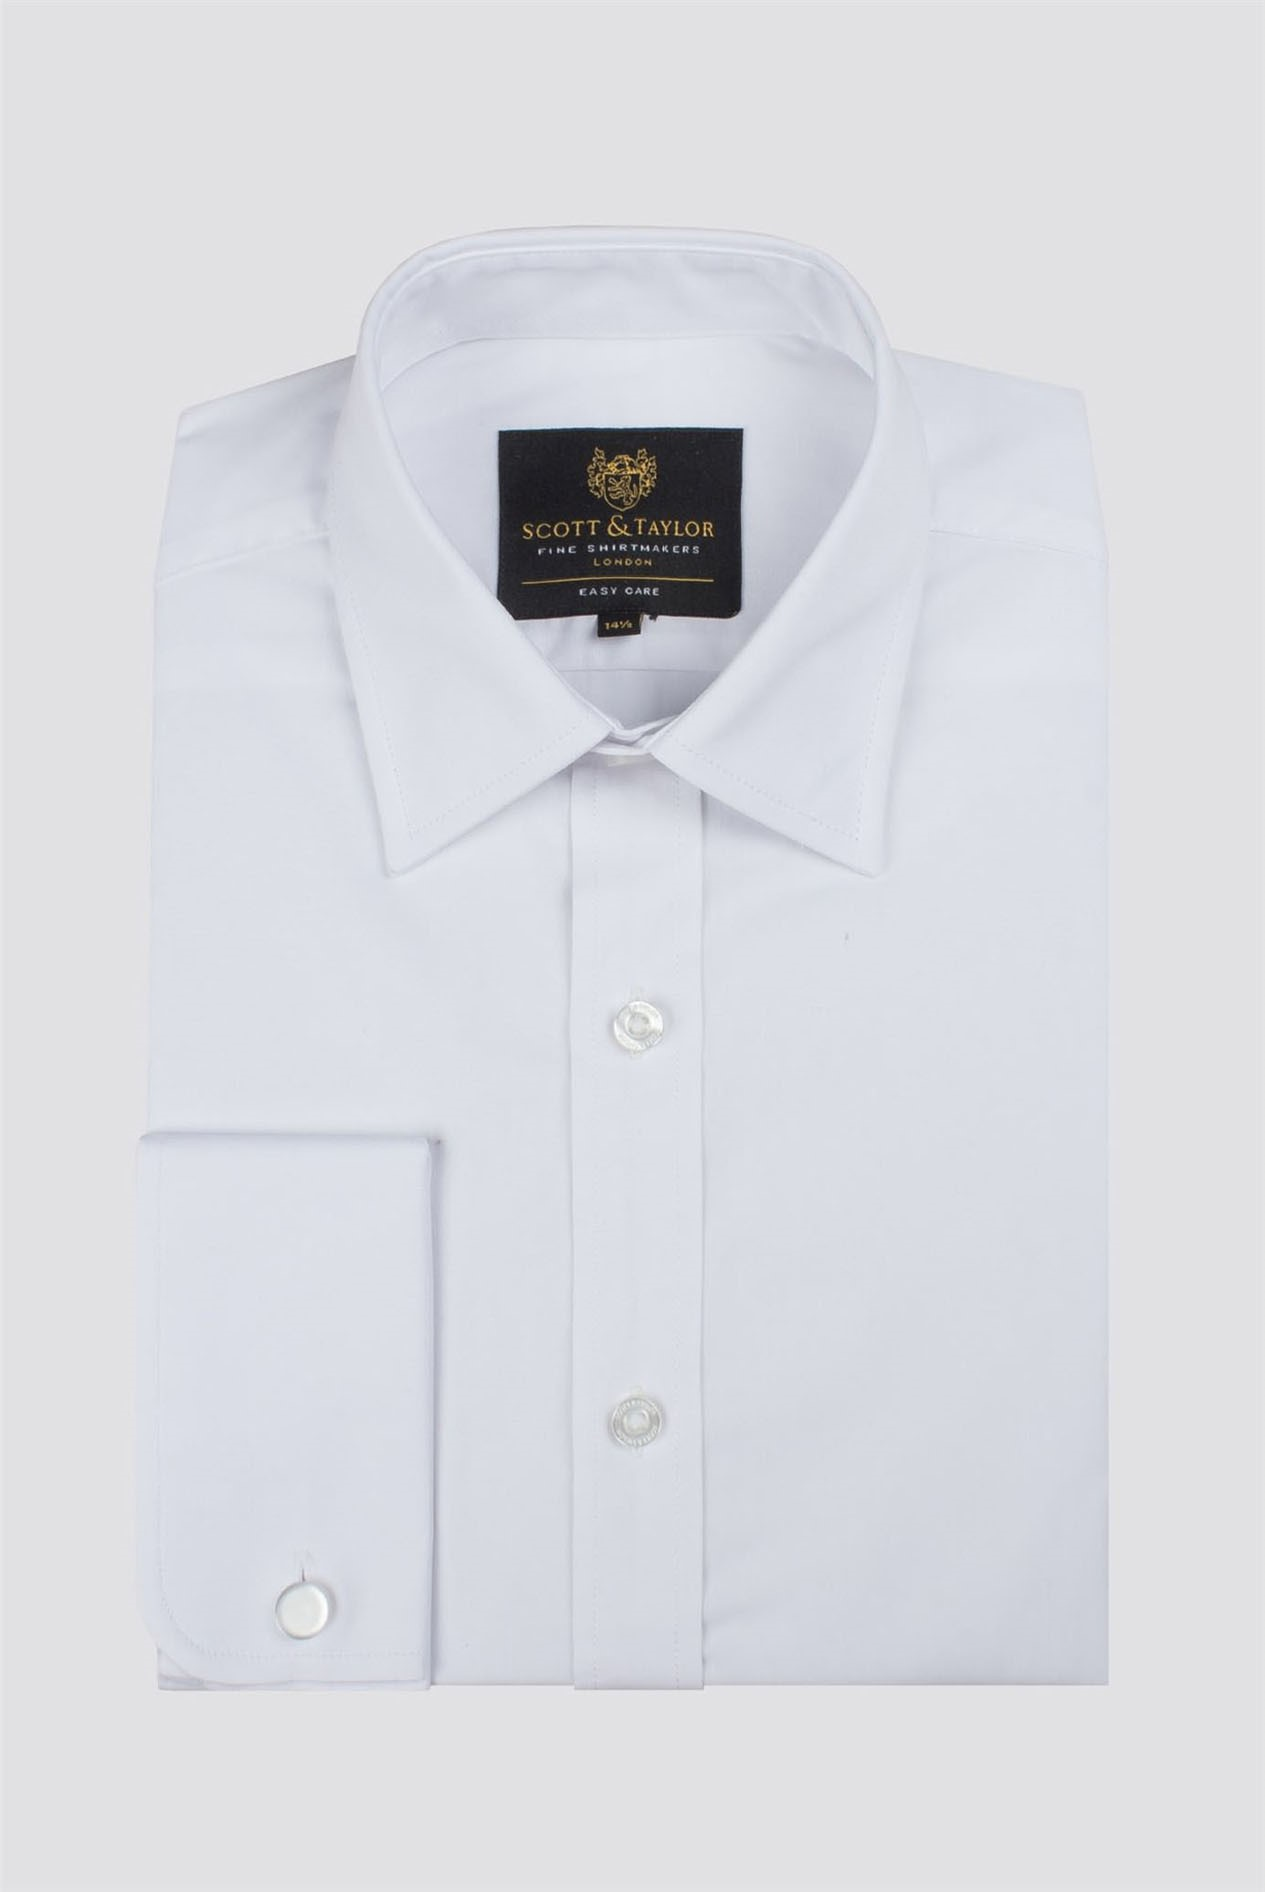 perfect for a Tie Slim Fit Standard Collar Double Cuff White Dress Shirt